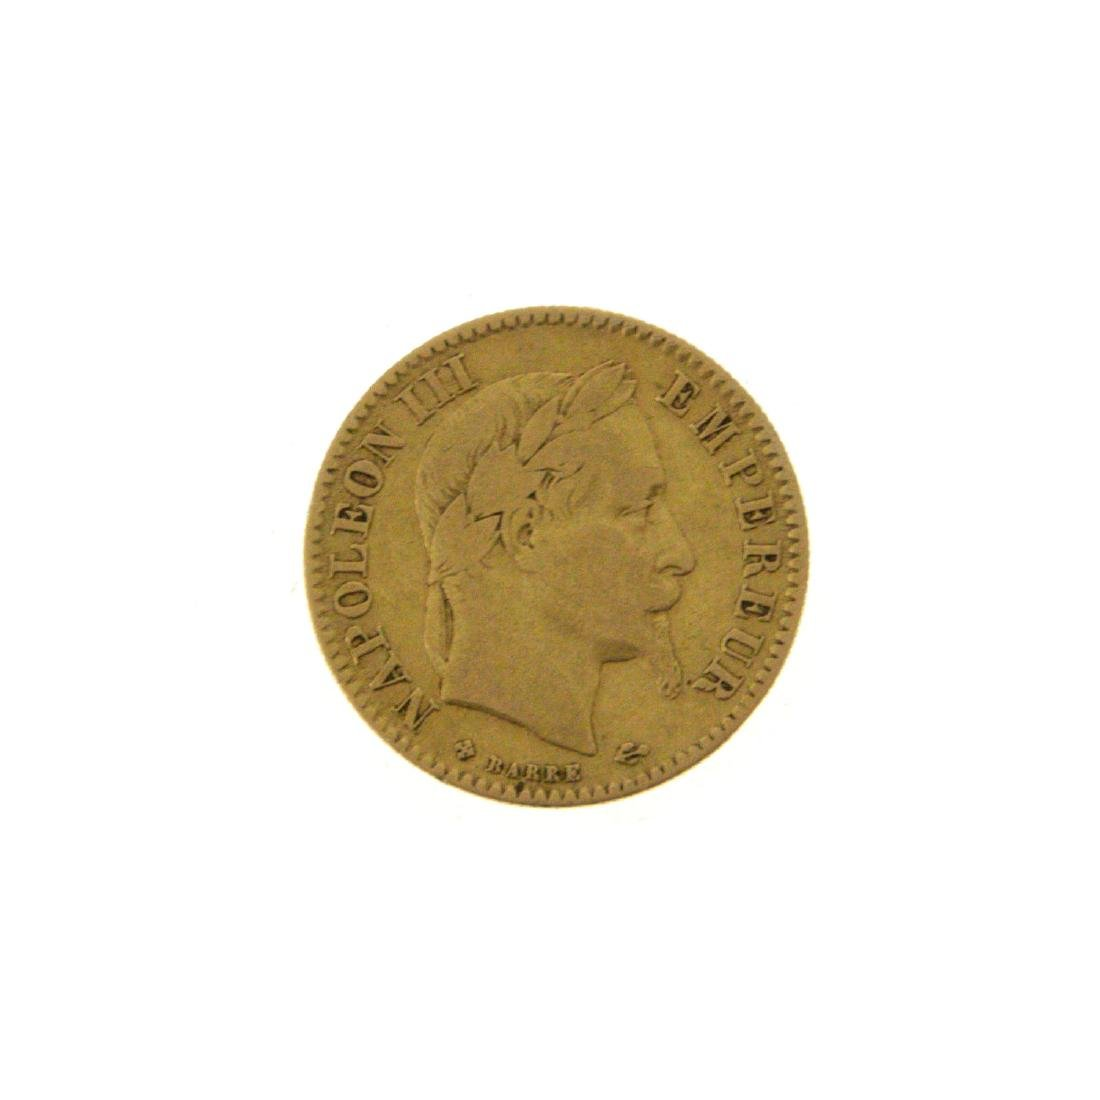 Napoleon III 10 French Francs Gold Coin, 1864.